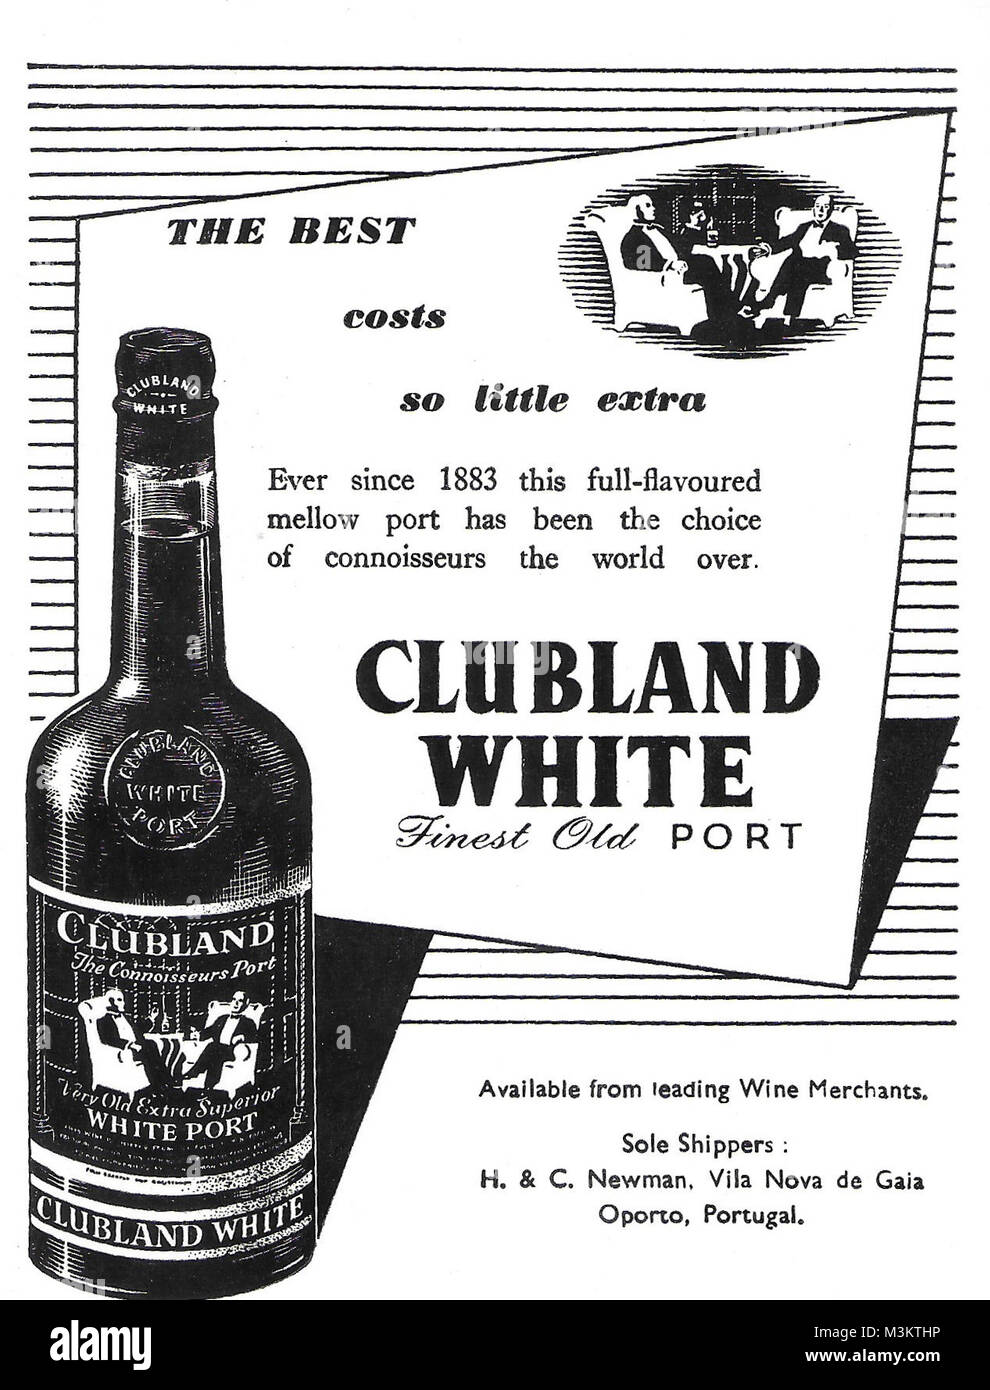 Clubland White finest old port advert, advertising in Country Life magazine UK 1951 - Stock Image